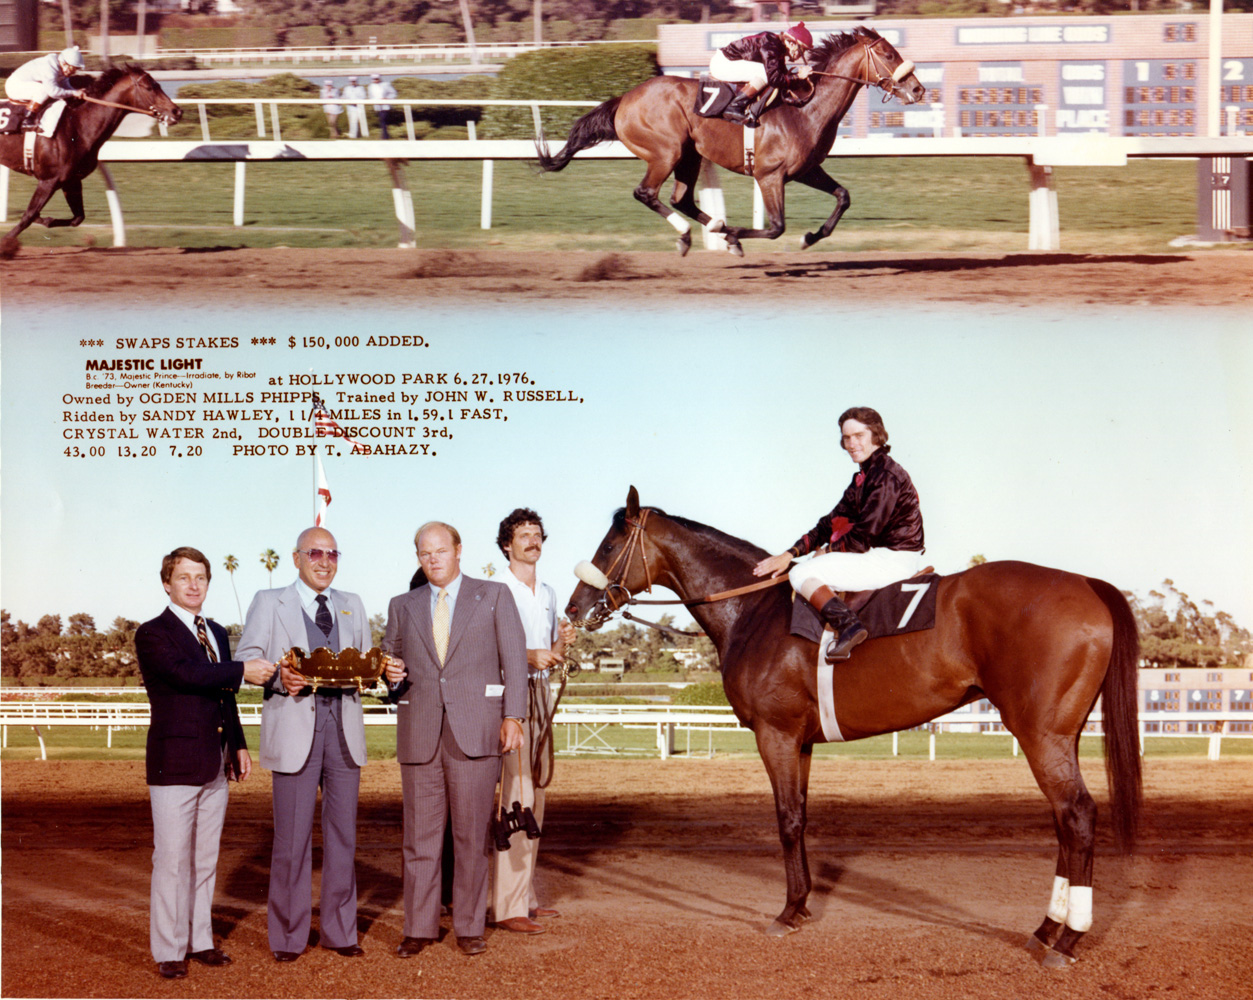 Win composite photograph for the 1976 Swap Stakes, won by Sandy Hawley and Majestic Light (Hollywood Park Photo/Museum Collection)